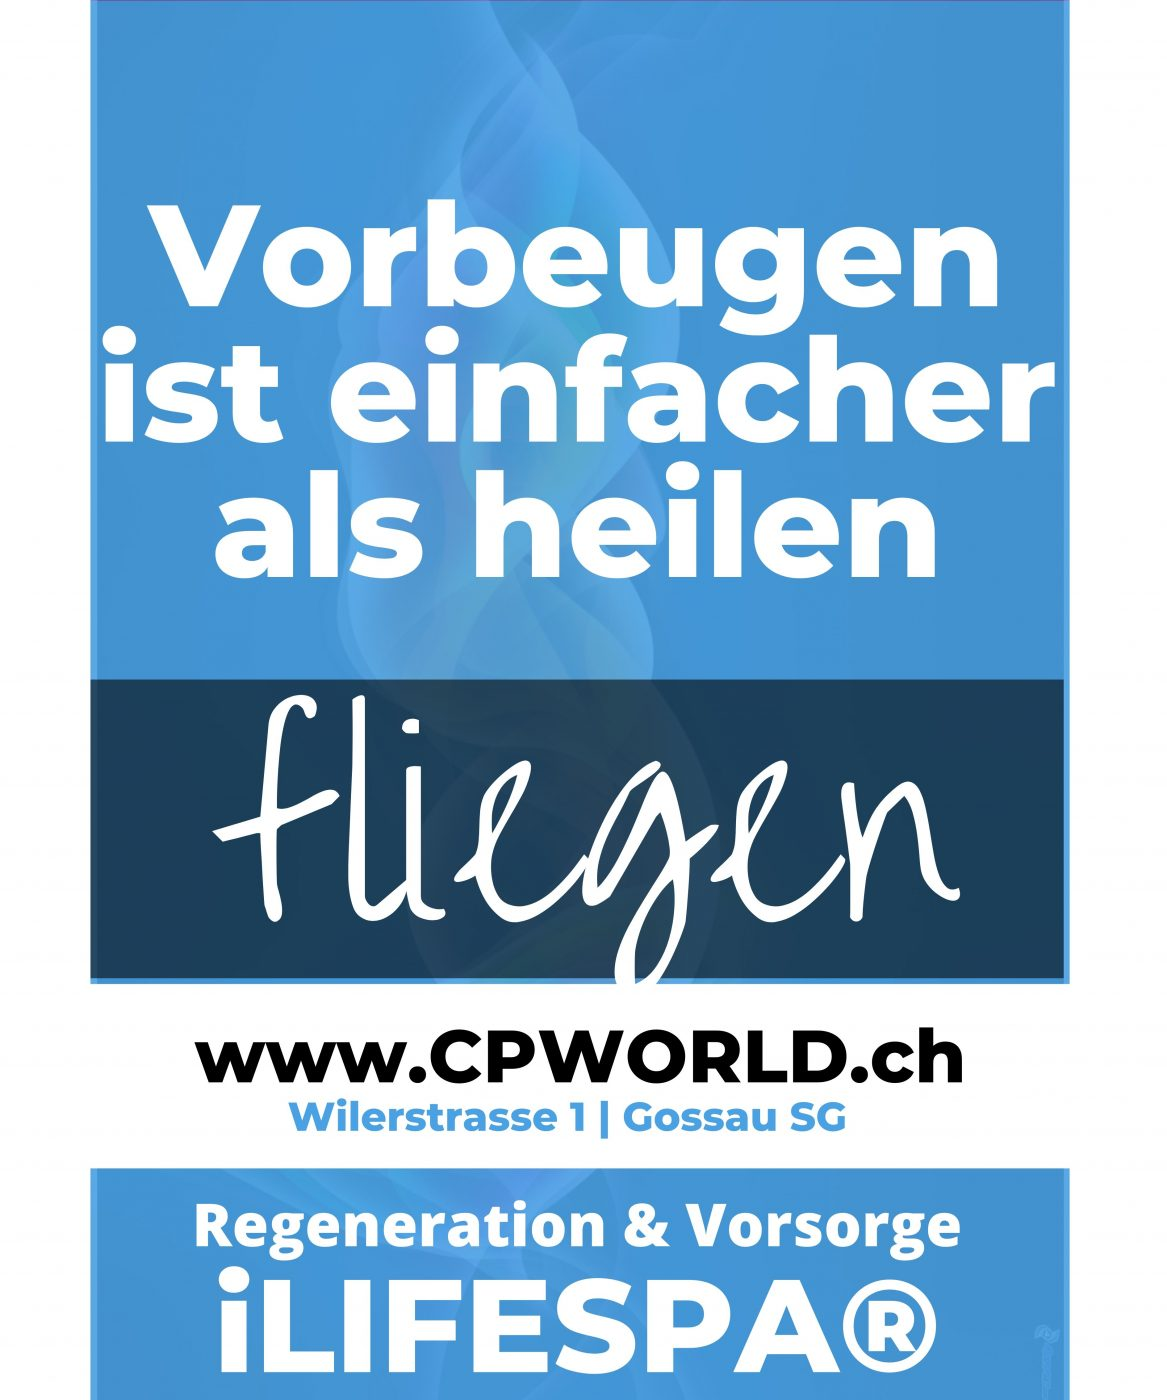 CPWORLD Zentrum für Connection